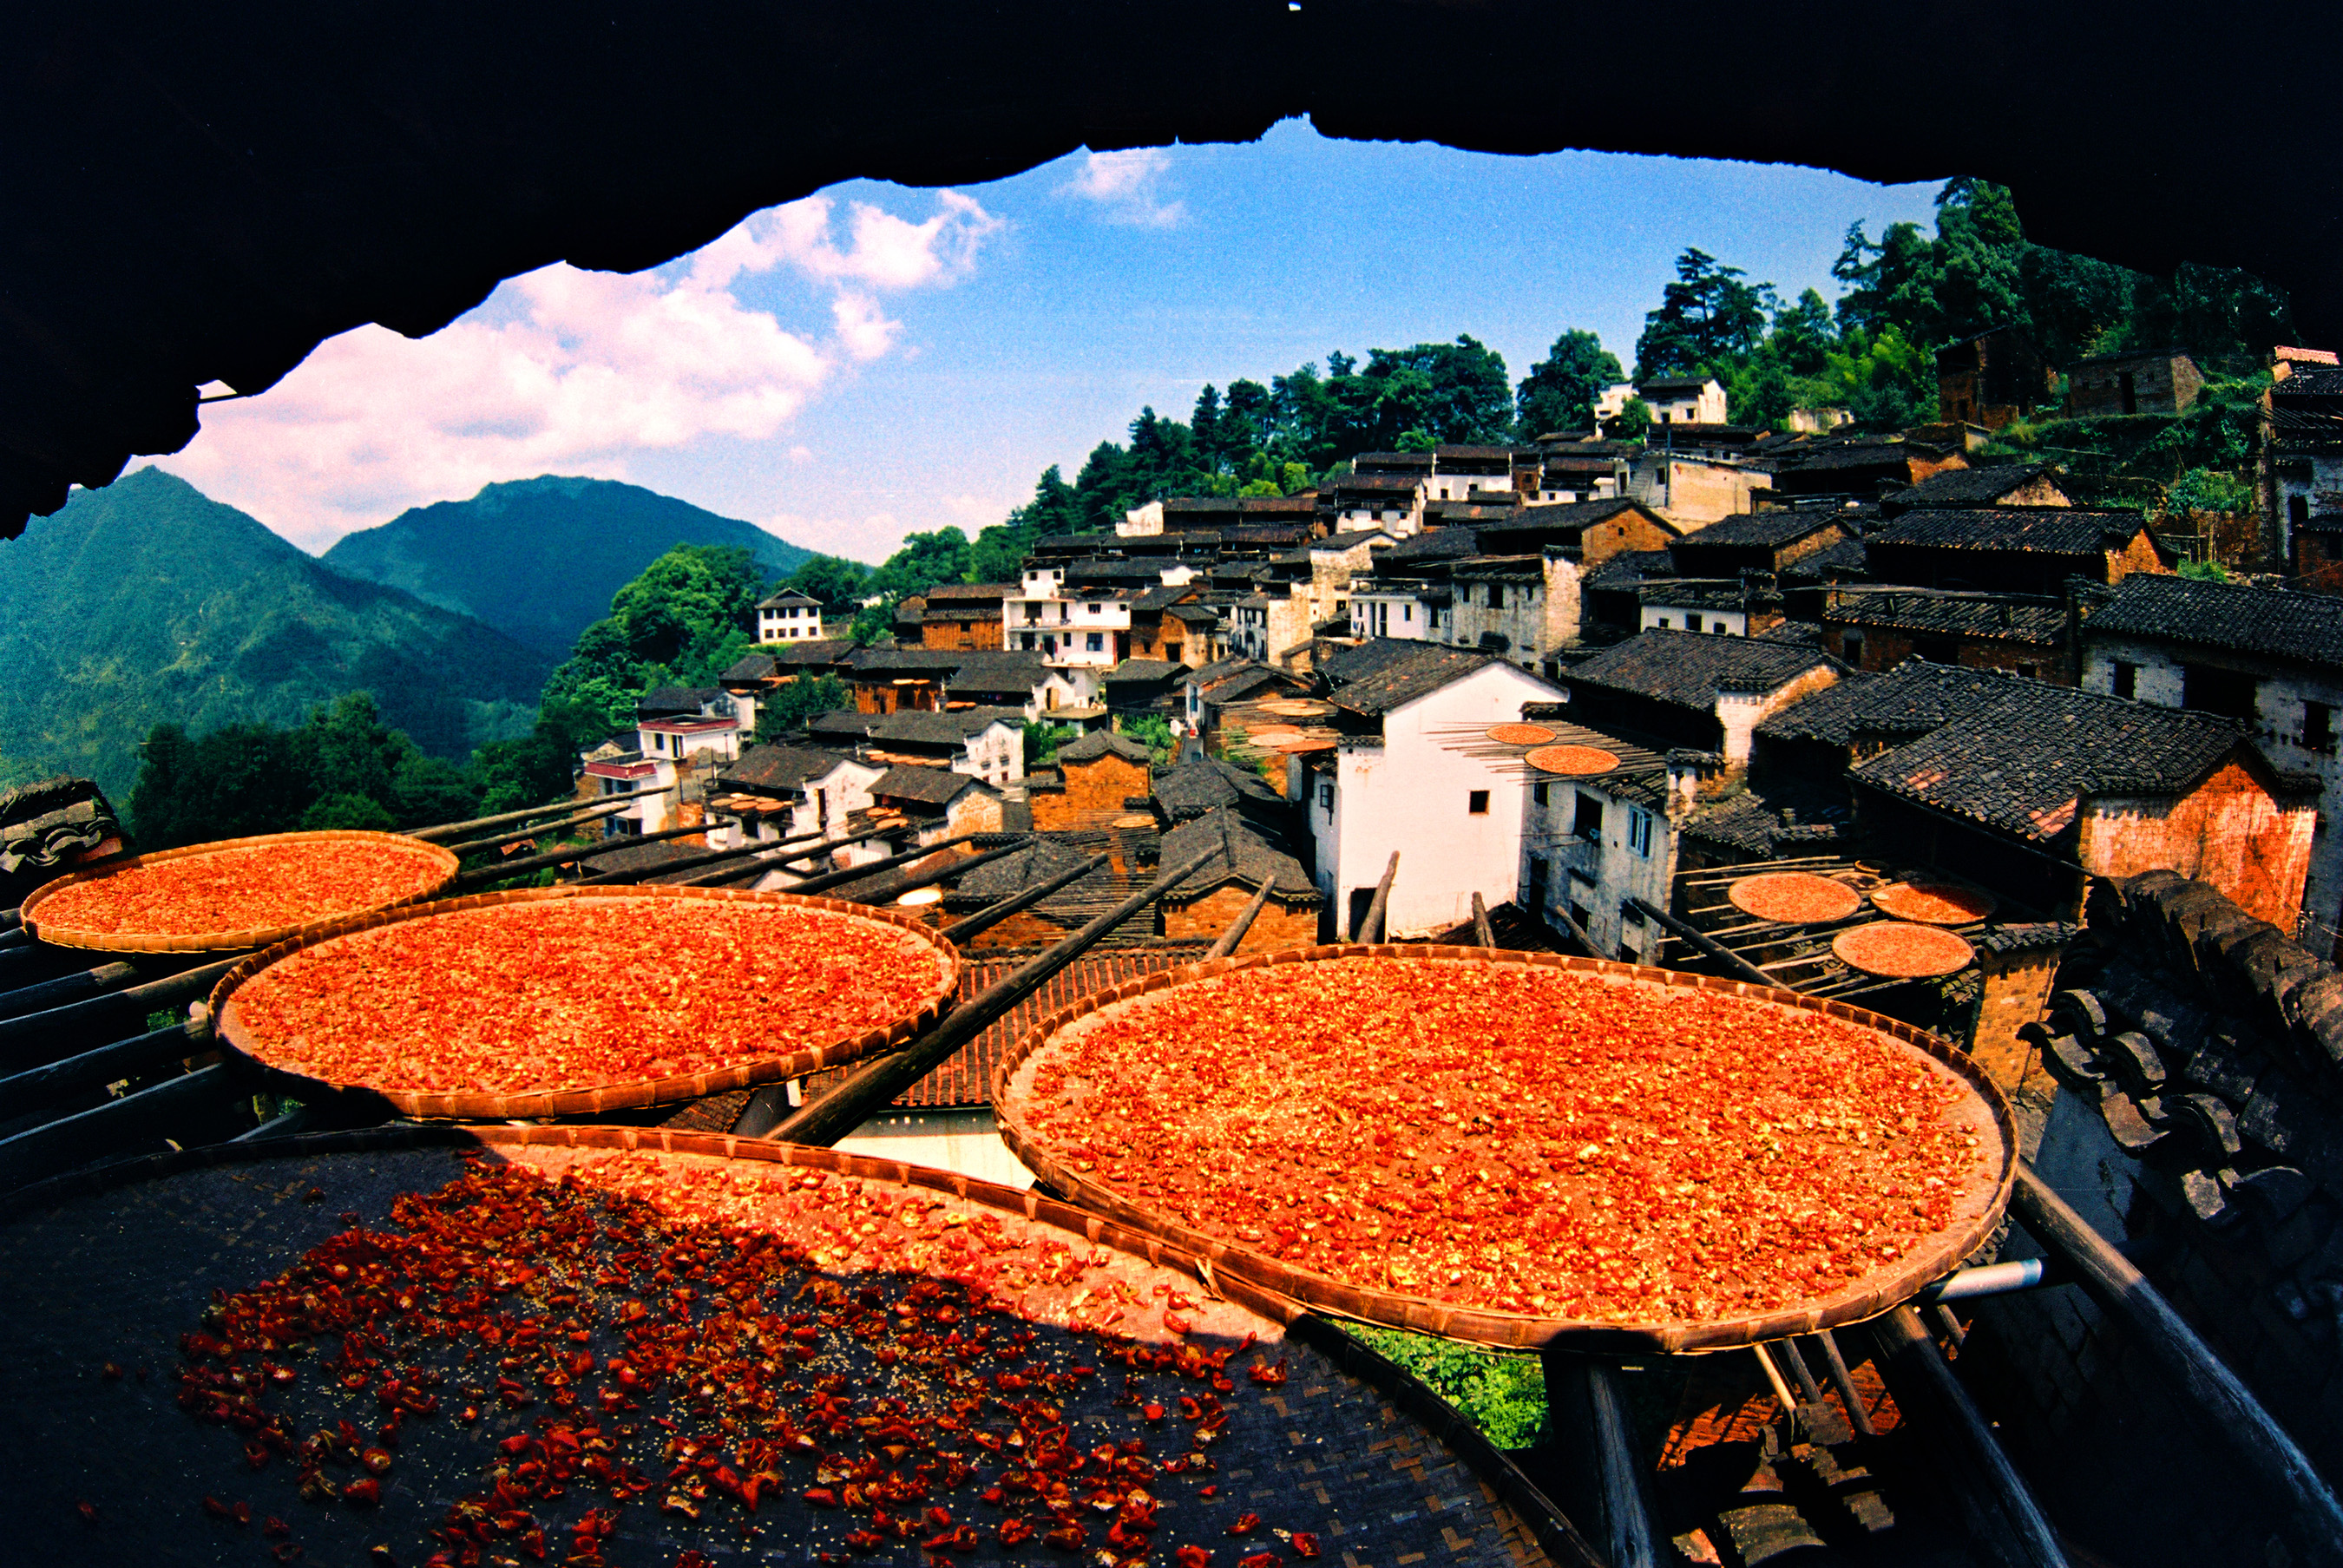 The unique view of shaiqiu can only be found in Huangling village where baskets of colorful harvest bask in the sunshine. (2)